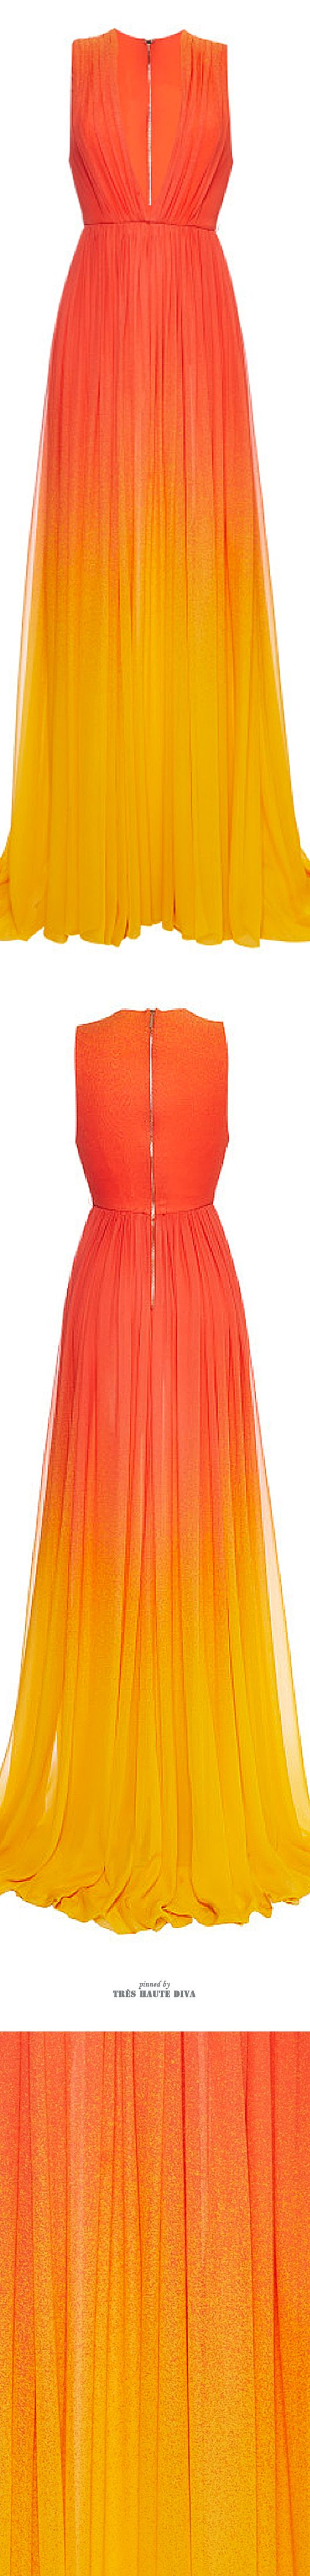 Orange yellow ombre maxi dress plunge neckline